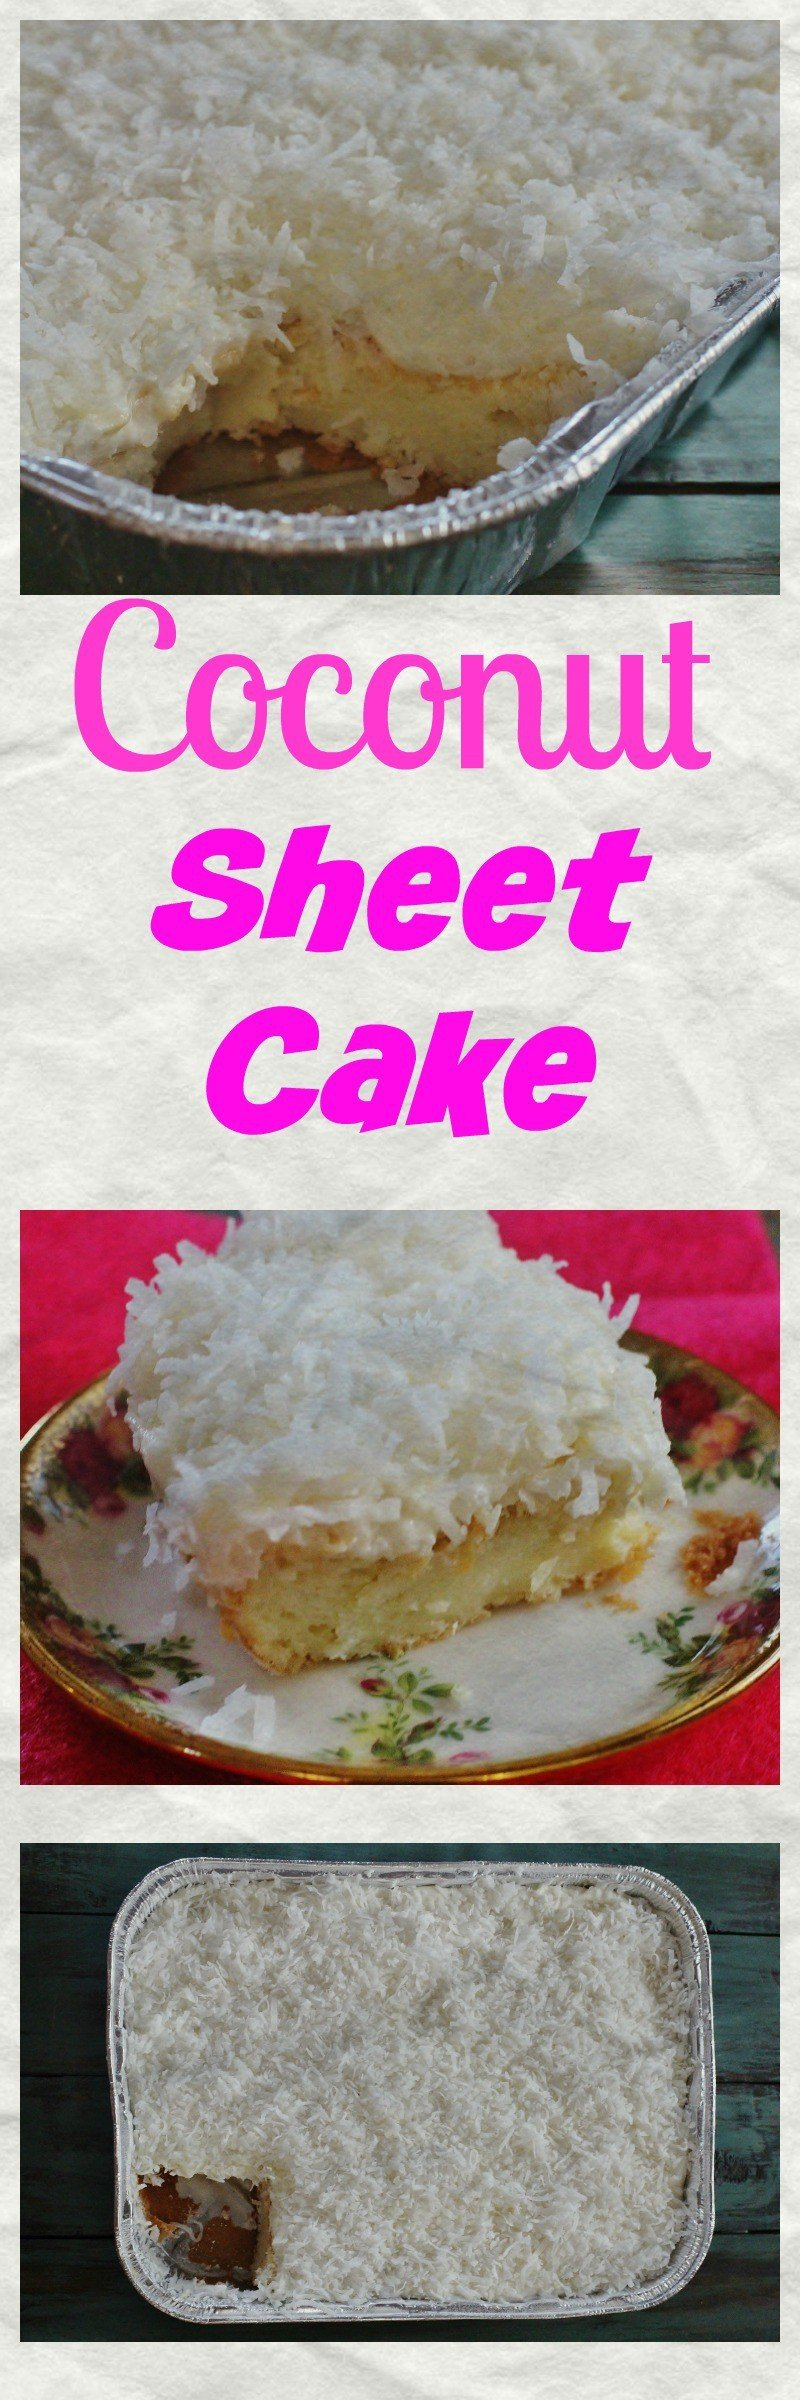 So, I made an easy Coconut Sheet Cake.I made a sheet cake instead of a layer cake for ease of serving. #MoistCake #CoconutCake